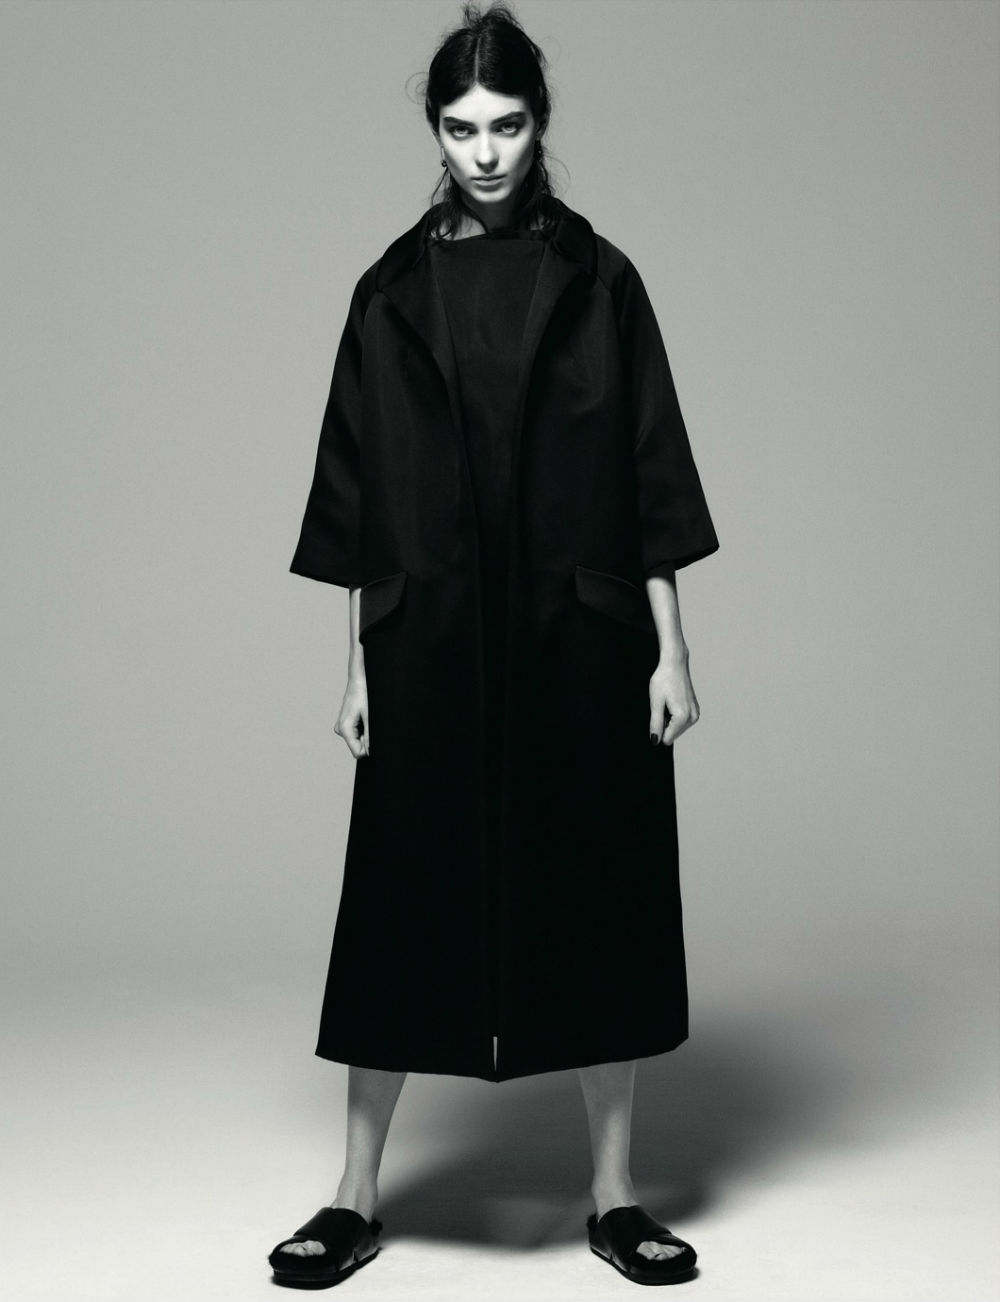 Kati Nescher in AnOther Magazne Spring 2013 by Daniel Jackson coat